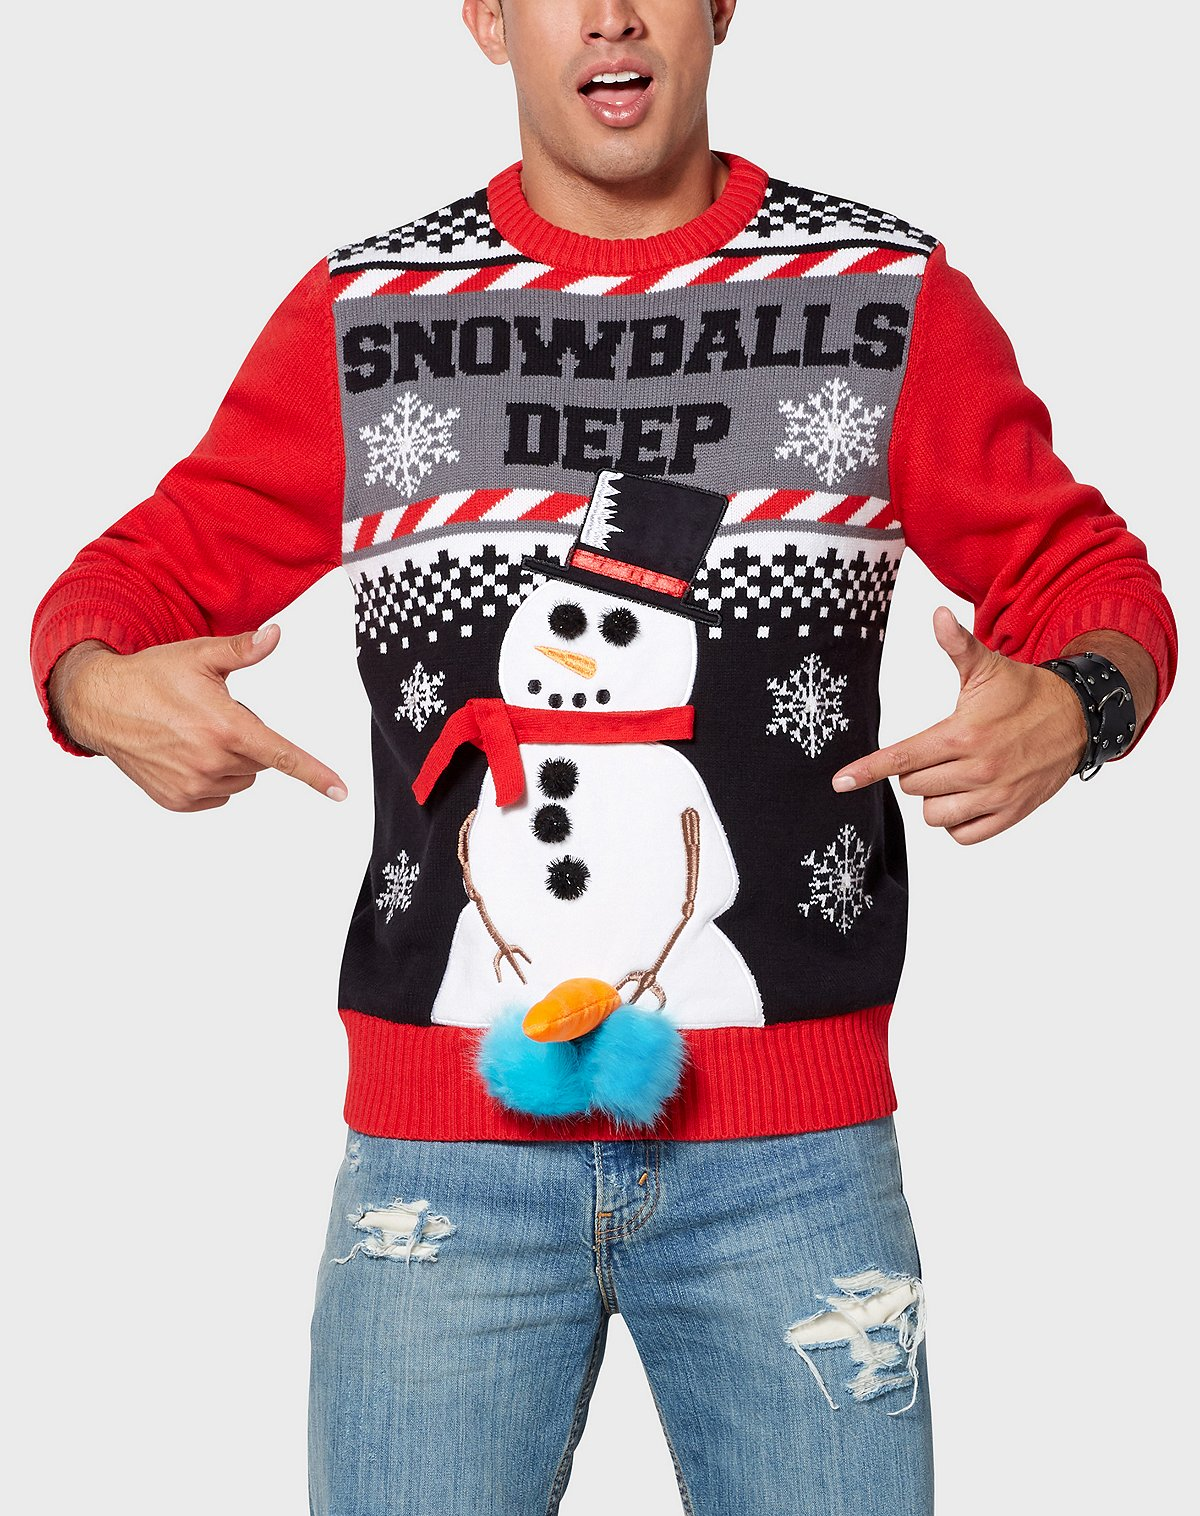 Funny Christmas Sweater.Top 10 Funny Ugly Christmas Sweaters Of 2018 Spencers